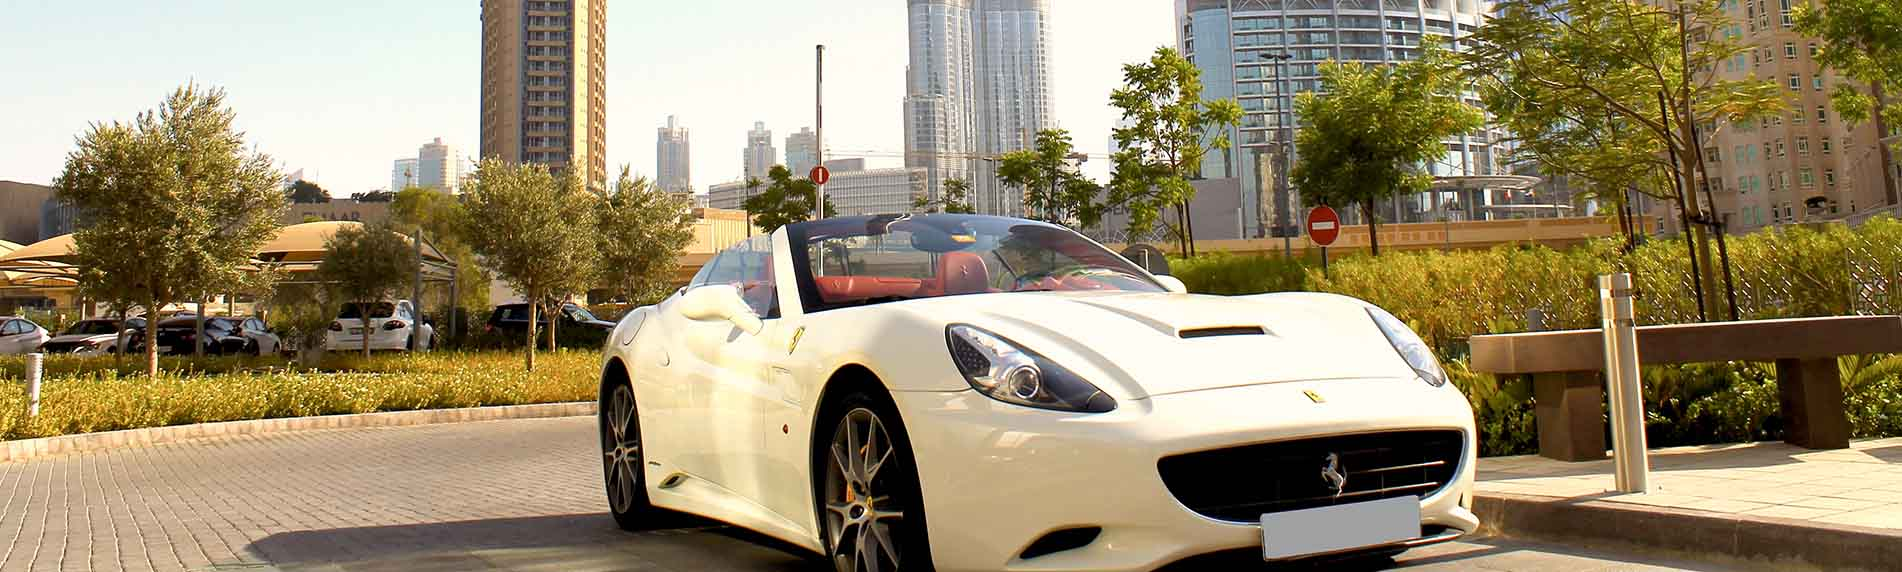 Ferrari Rental Dubai Hire Luxury Car In Dubai